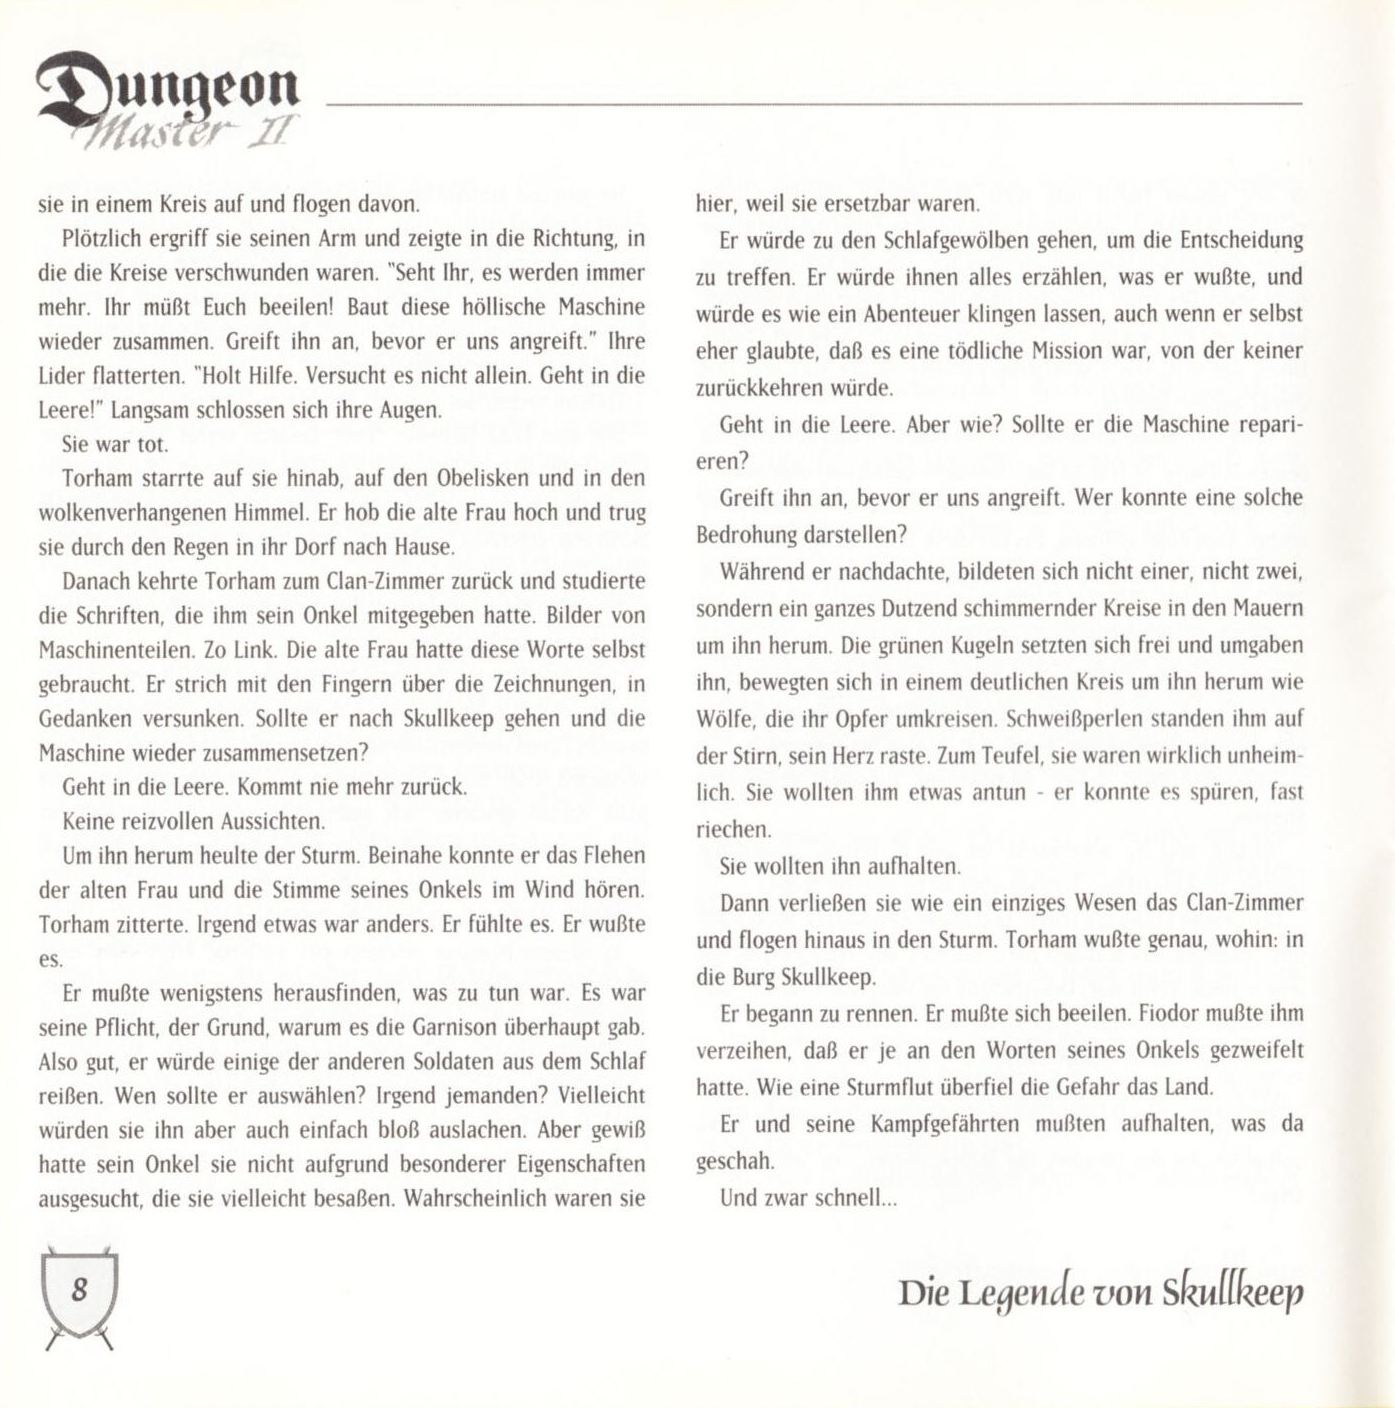 Game - Dungeon Master II - DE - PC - Blackmarket With Booklet - Booklet - Page 010 - Scan